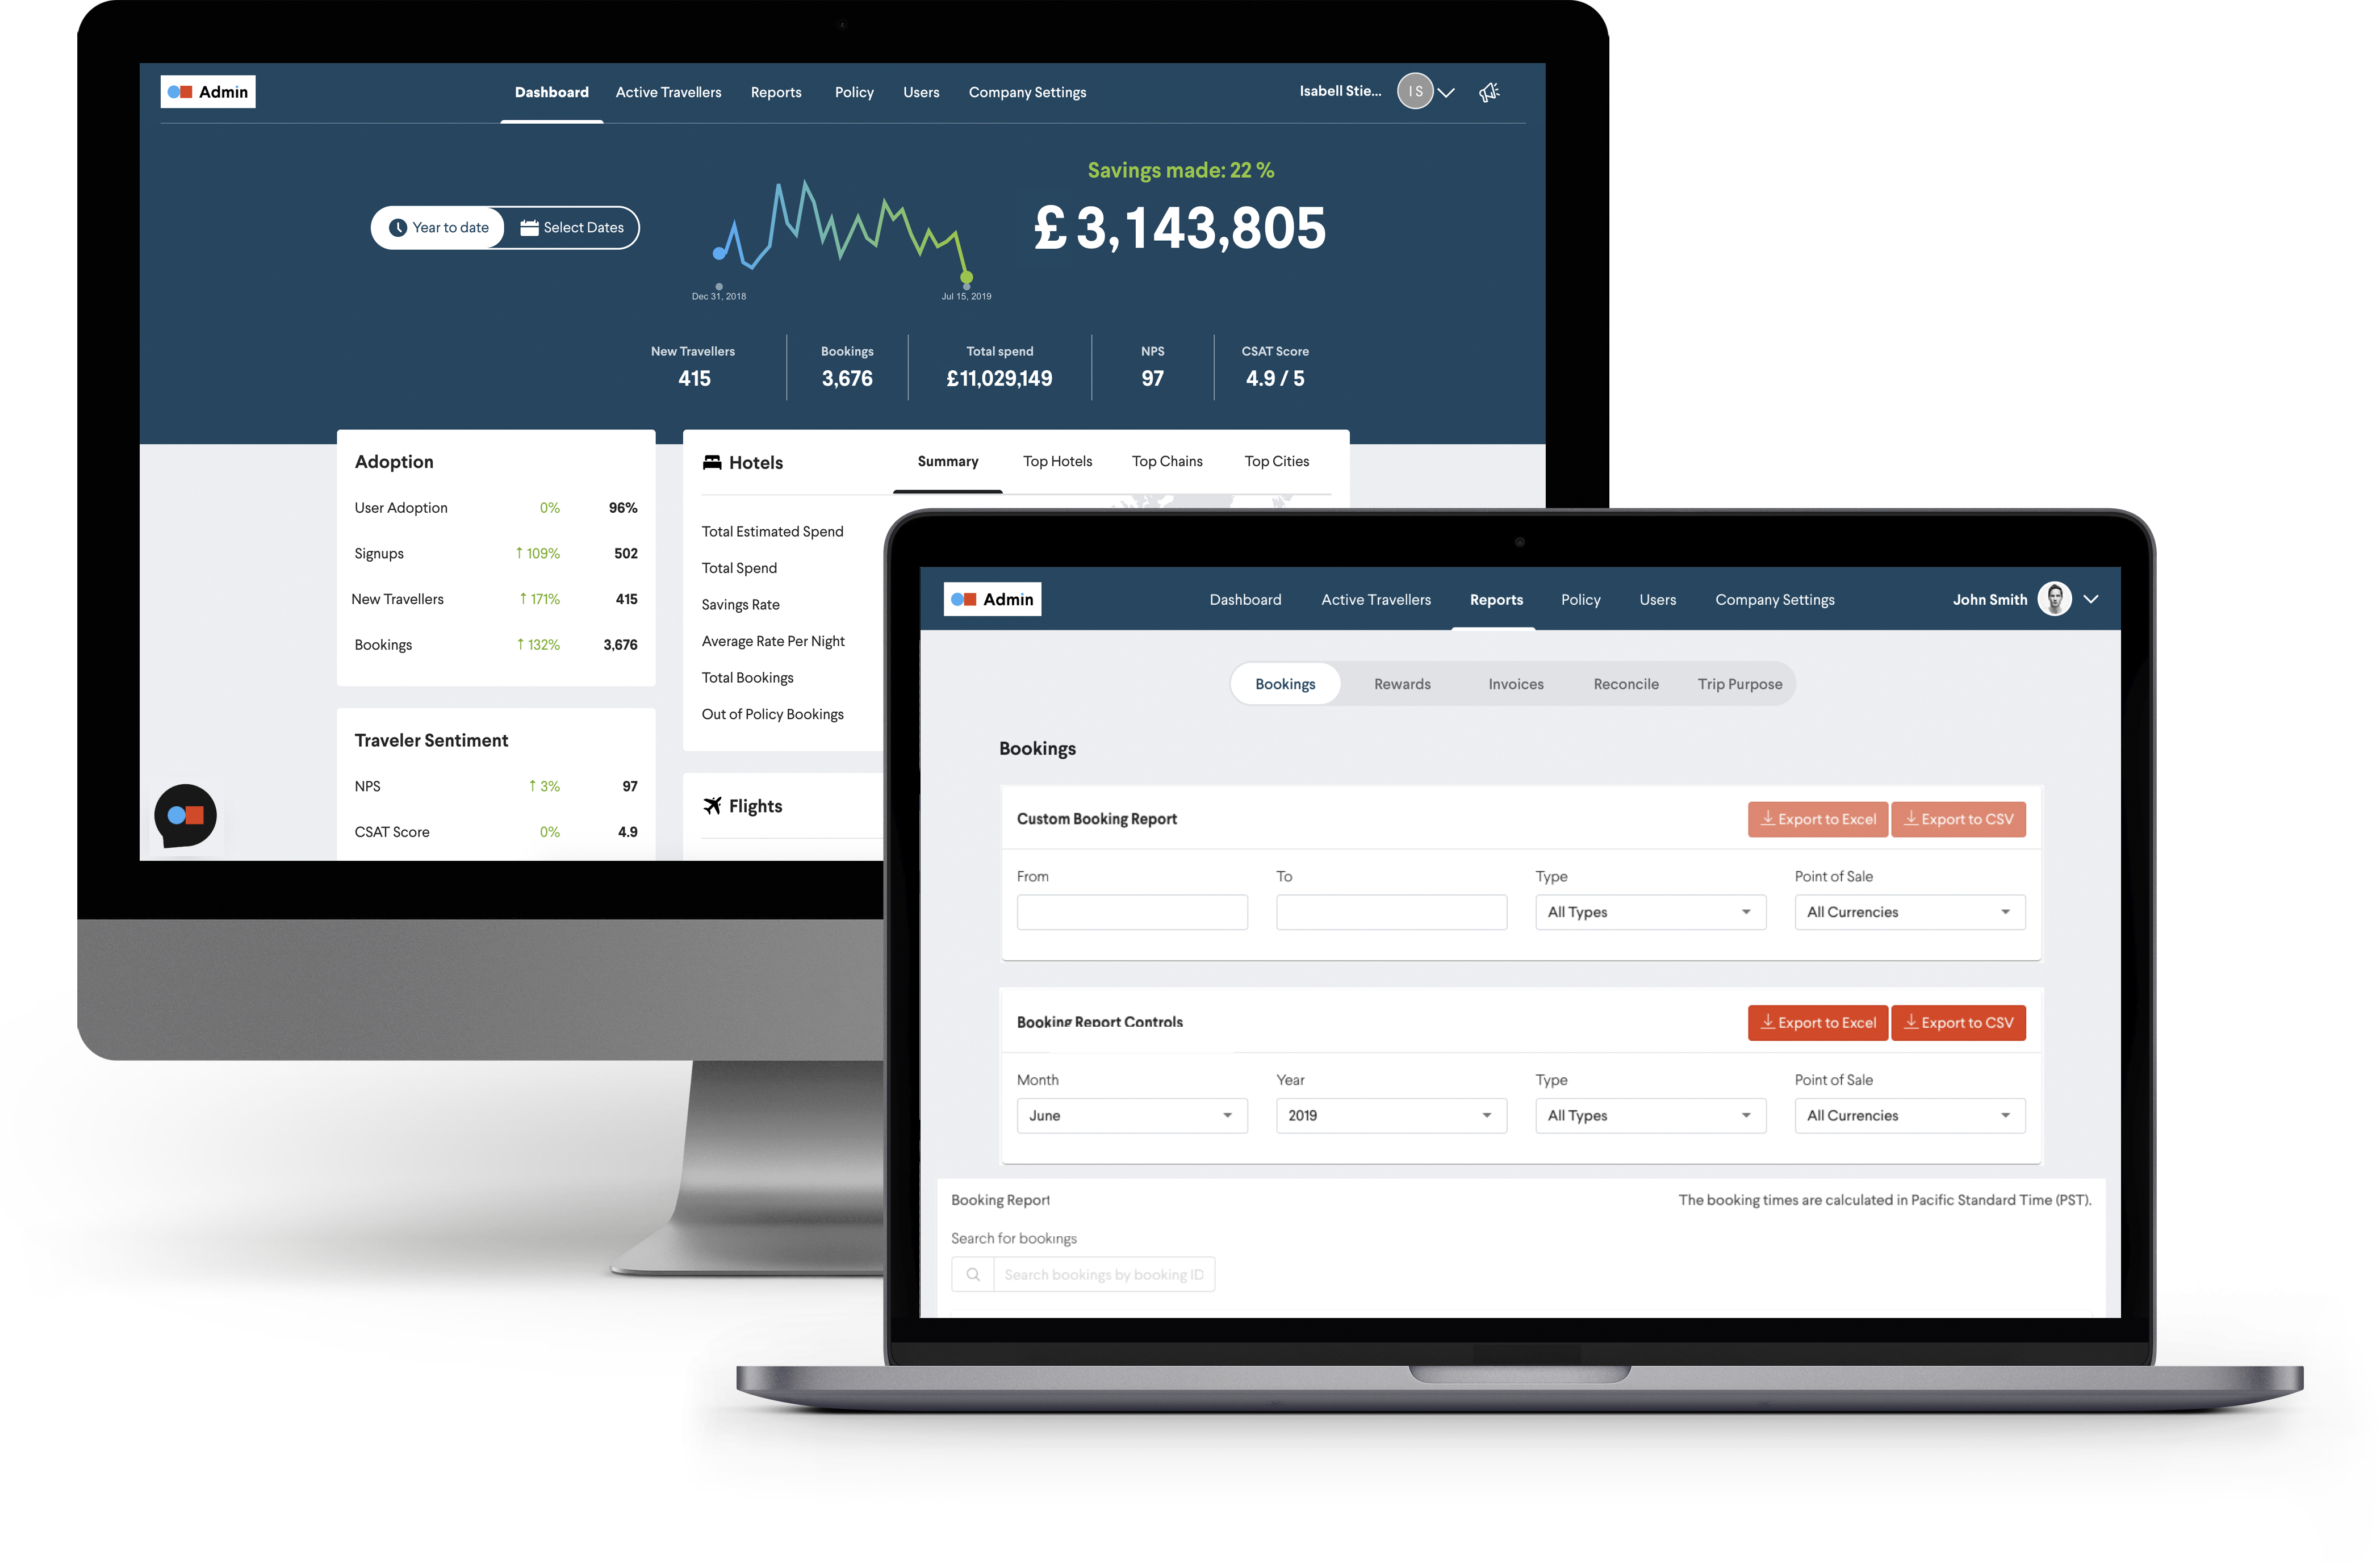 TripActions Enterprise - The TripActions product application dashboard provides detailed insight into travel spend and many other details